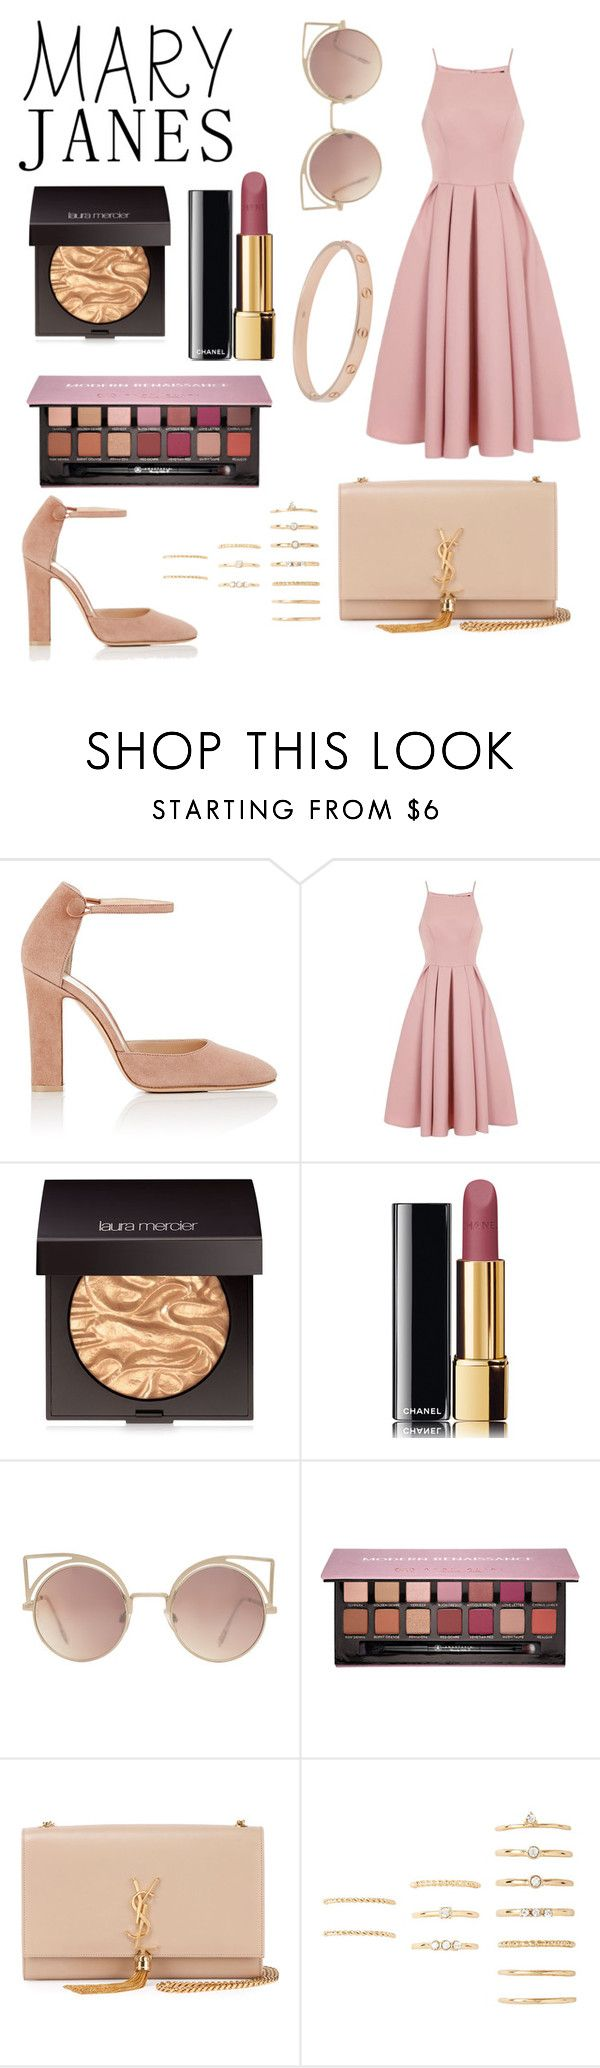 """""""Mary Janes"""" by thenamesmames ❤ liked on Polyvore featuring Gianvito Rossi, Chi Chi, Laura Mercier, Chanel, MANGO, Anastasia Beverly Hills, Yves Saint Laurent, Forever 21, Cartier and contest"""